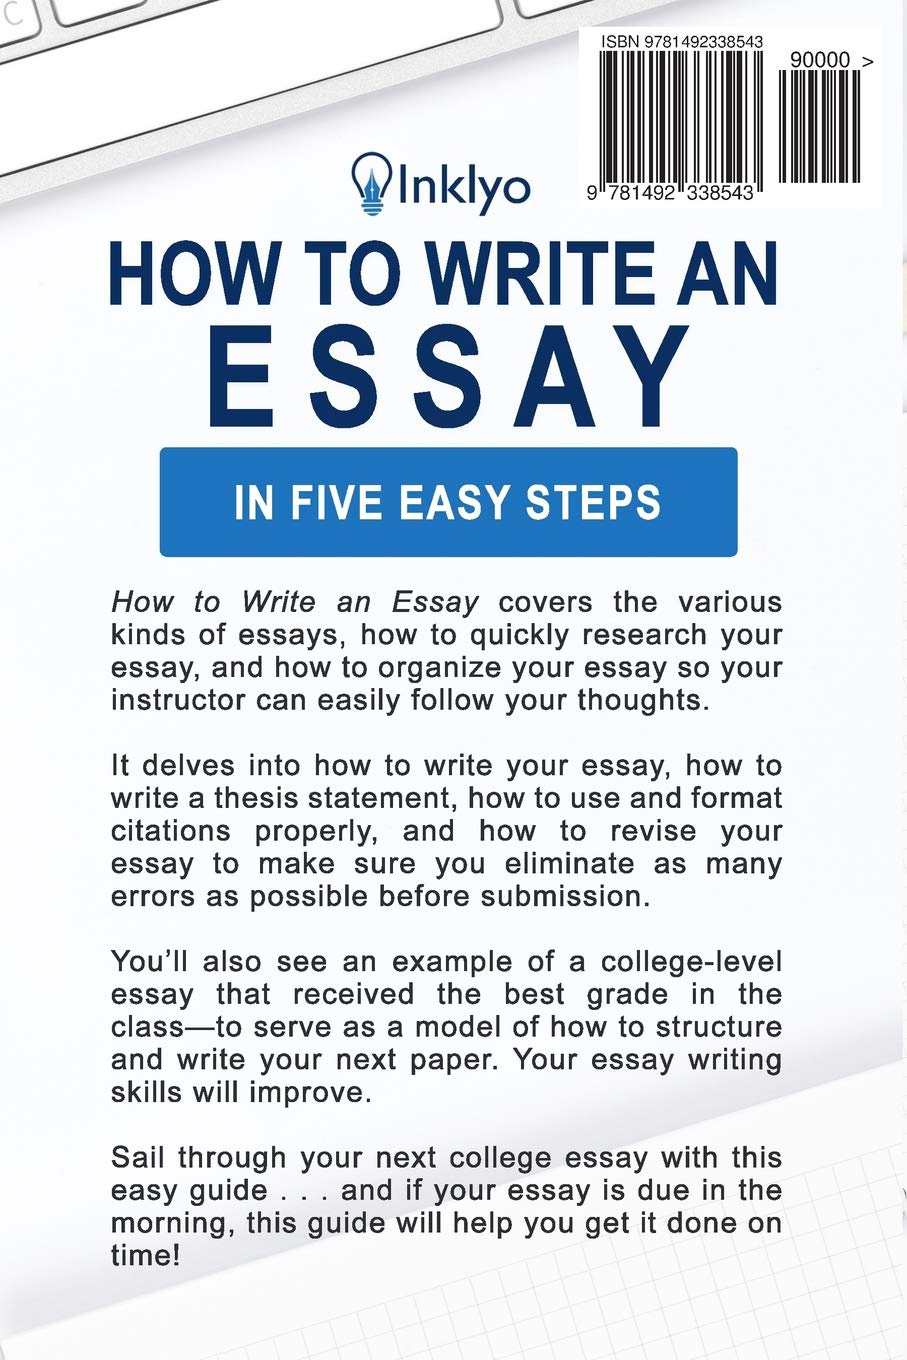 004 Essay Example How To Write And Unique An Paper In Apa Format Conclusion Mla Full